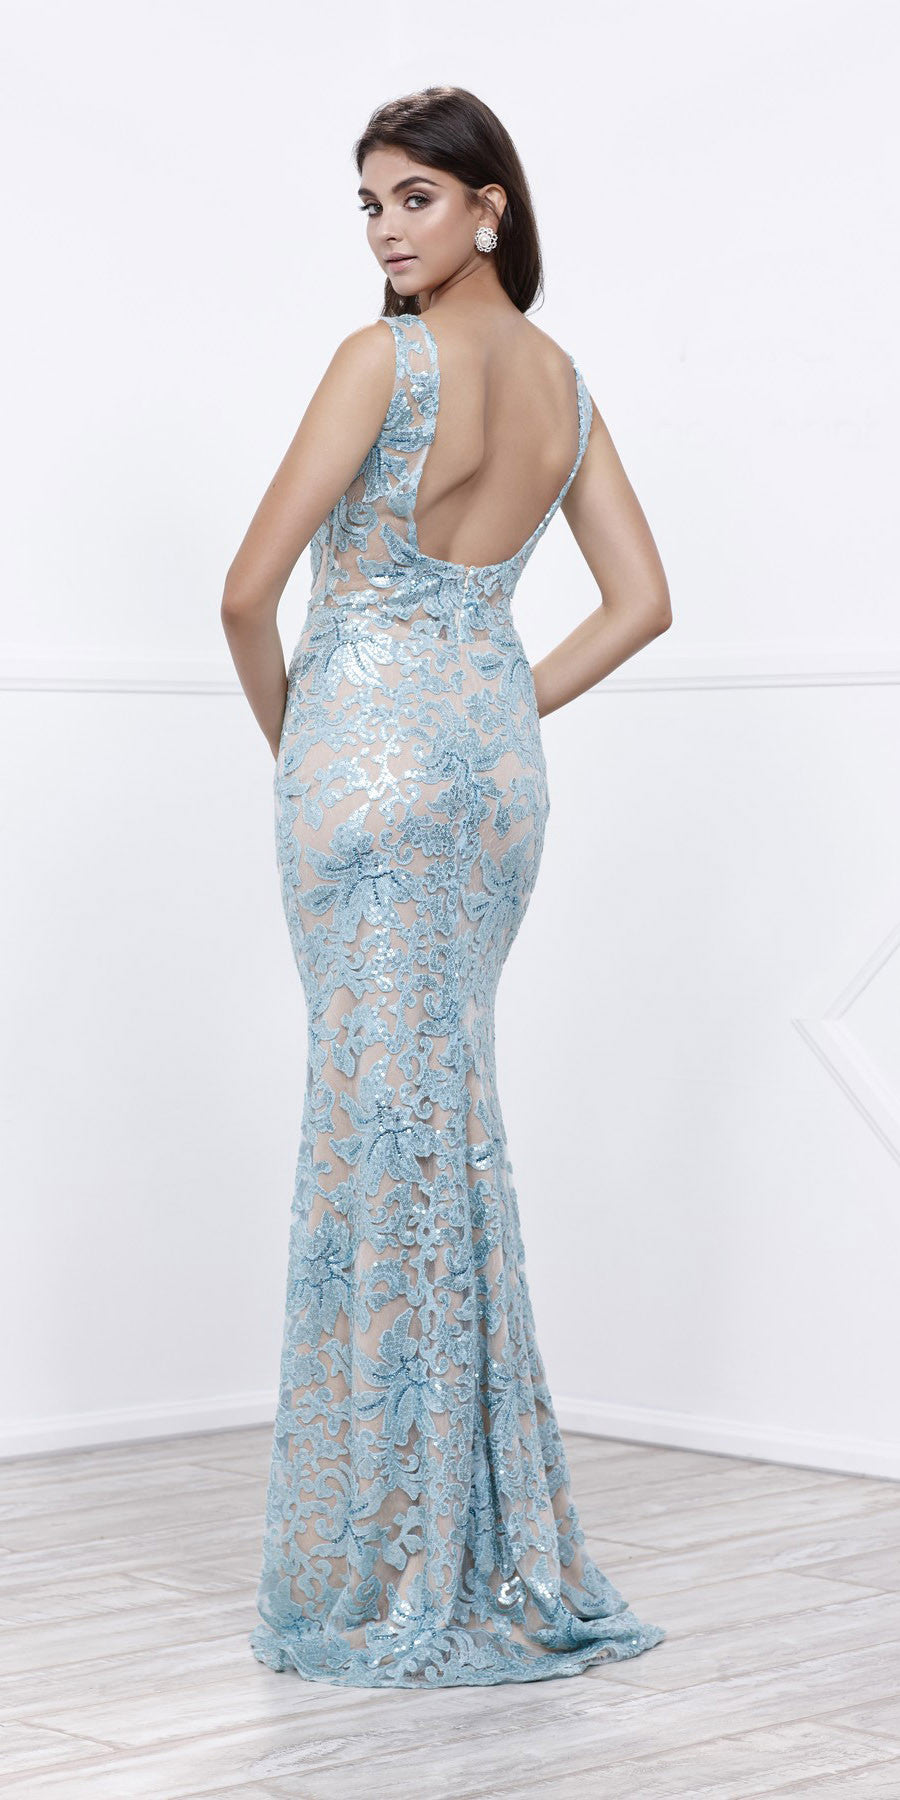 Metallic Lace Fitted Sleeveless Prom Gown Open Back Aqua Nude